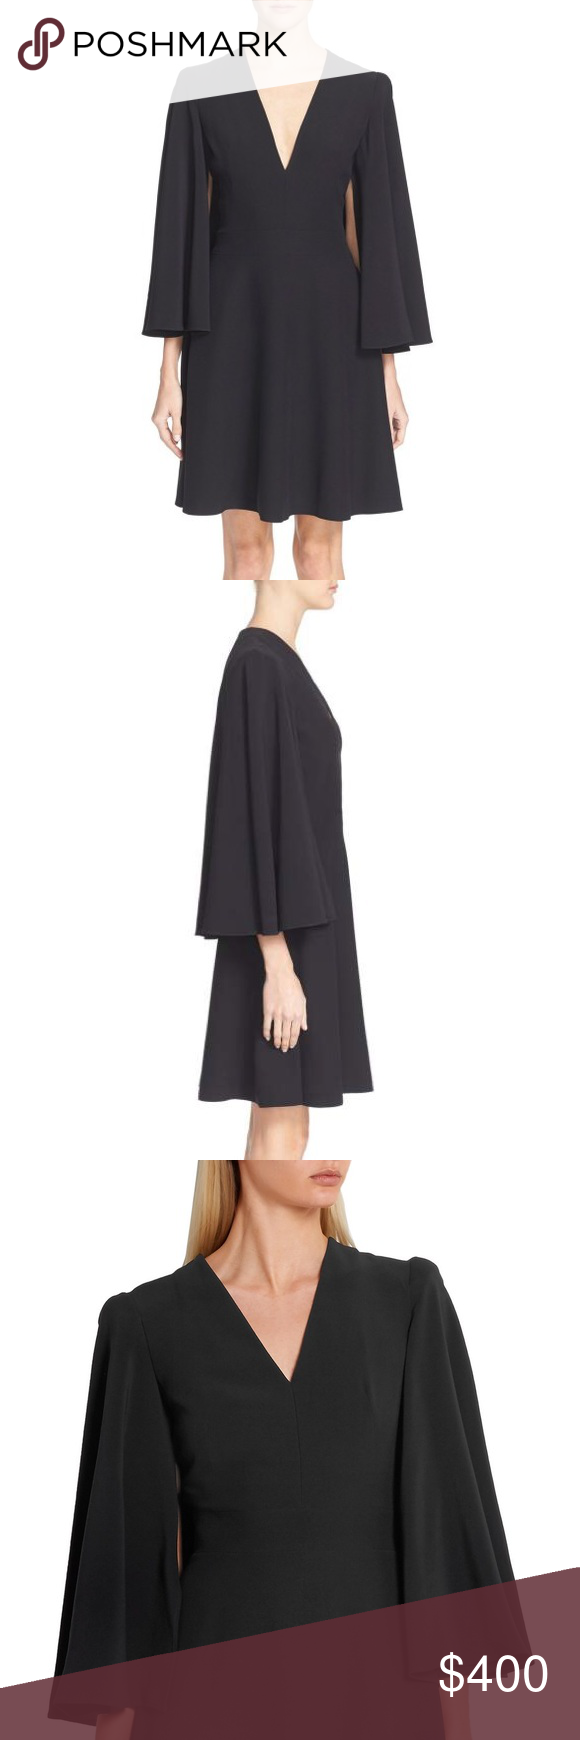 9ee67f5ba13074 Alexander McQueen Caped Dress NWOT Alexander McQueen crepe dress with an  elegant cape. Stellar sewing